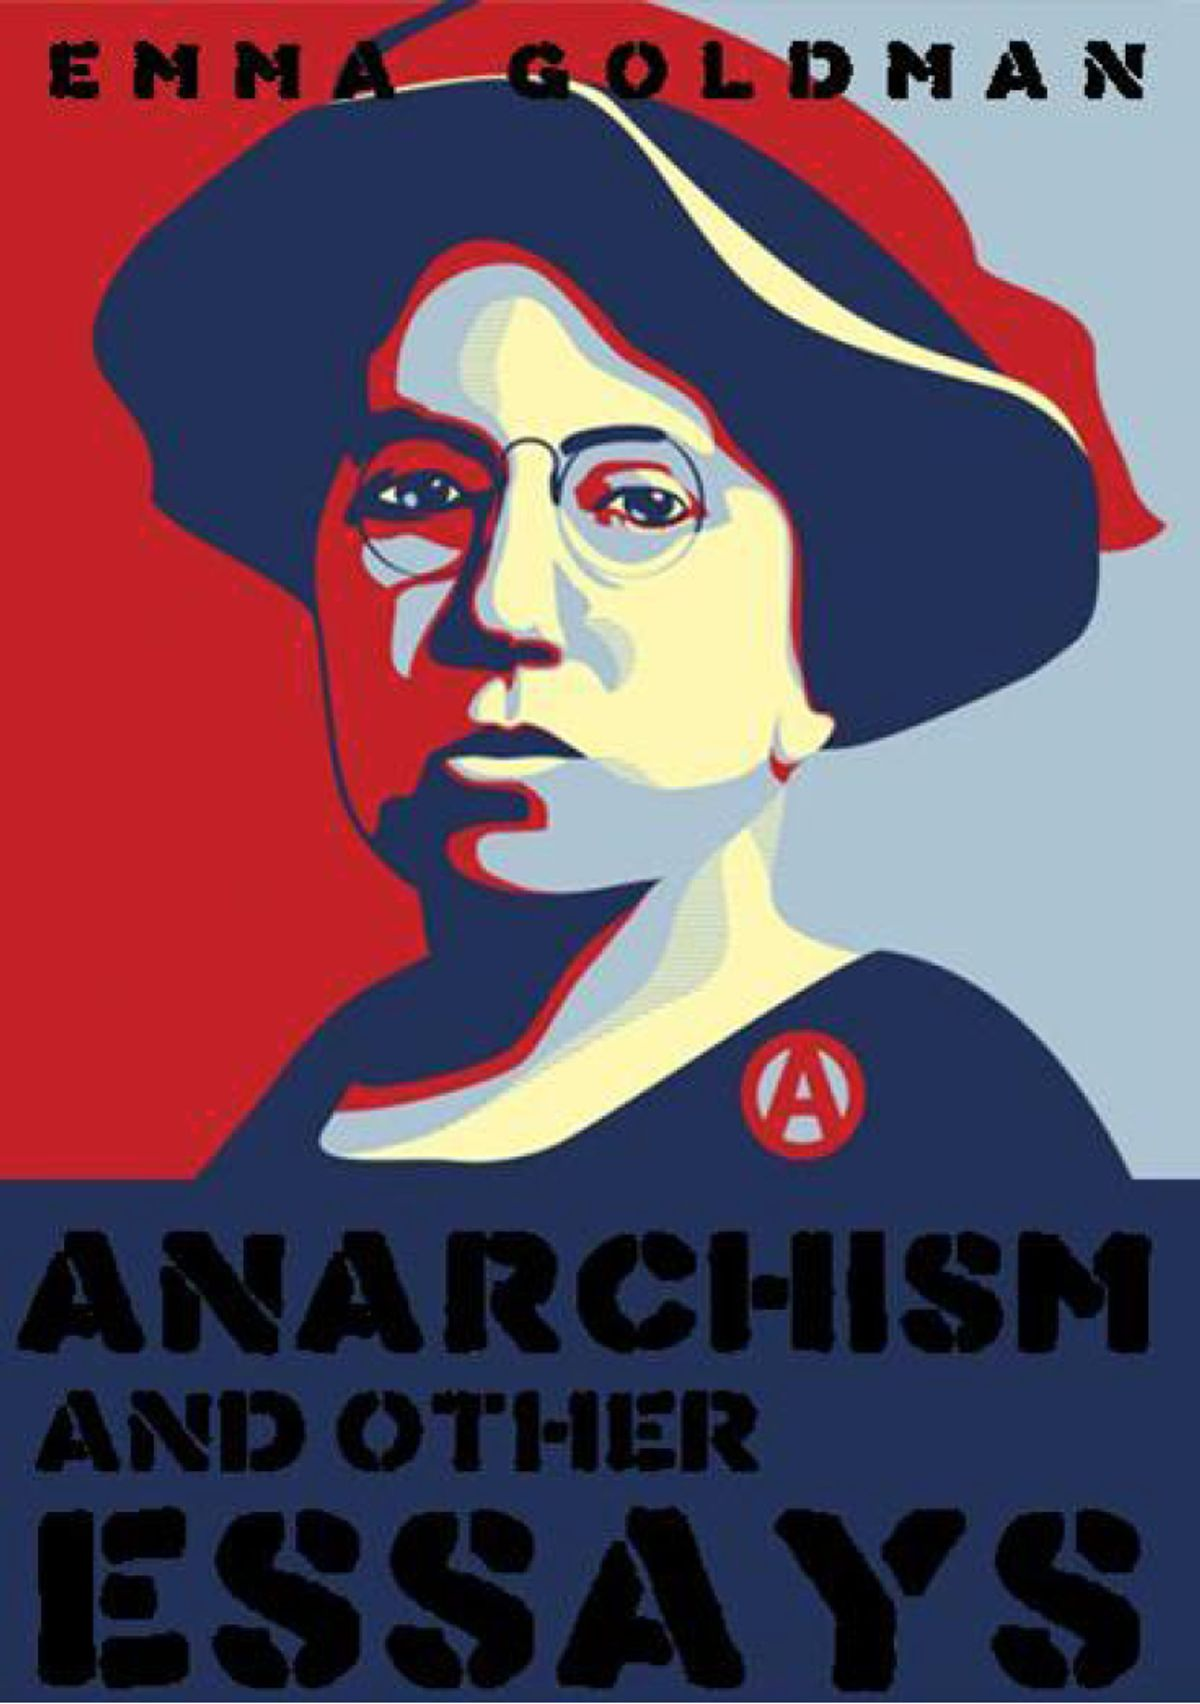 002 Essay Example Anarchism And Other Essays Incredible Emma Goldman Summary Pdf Full